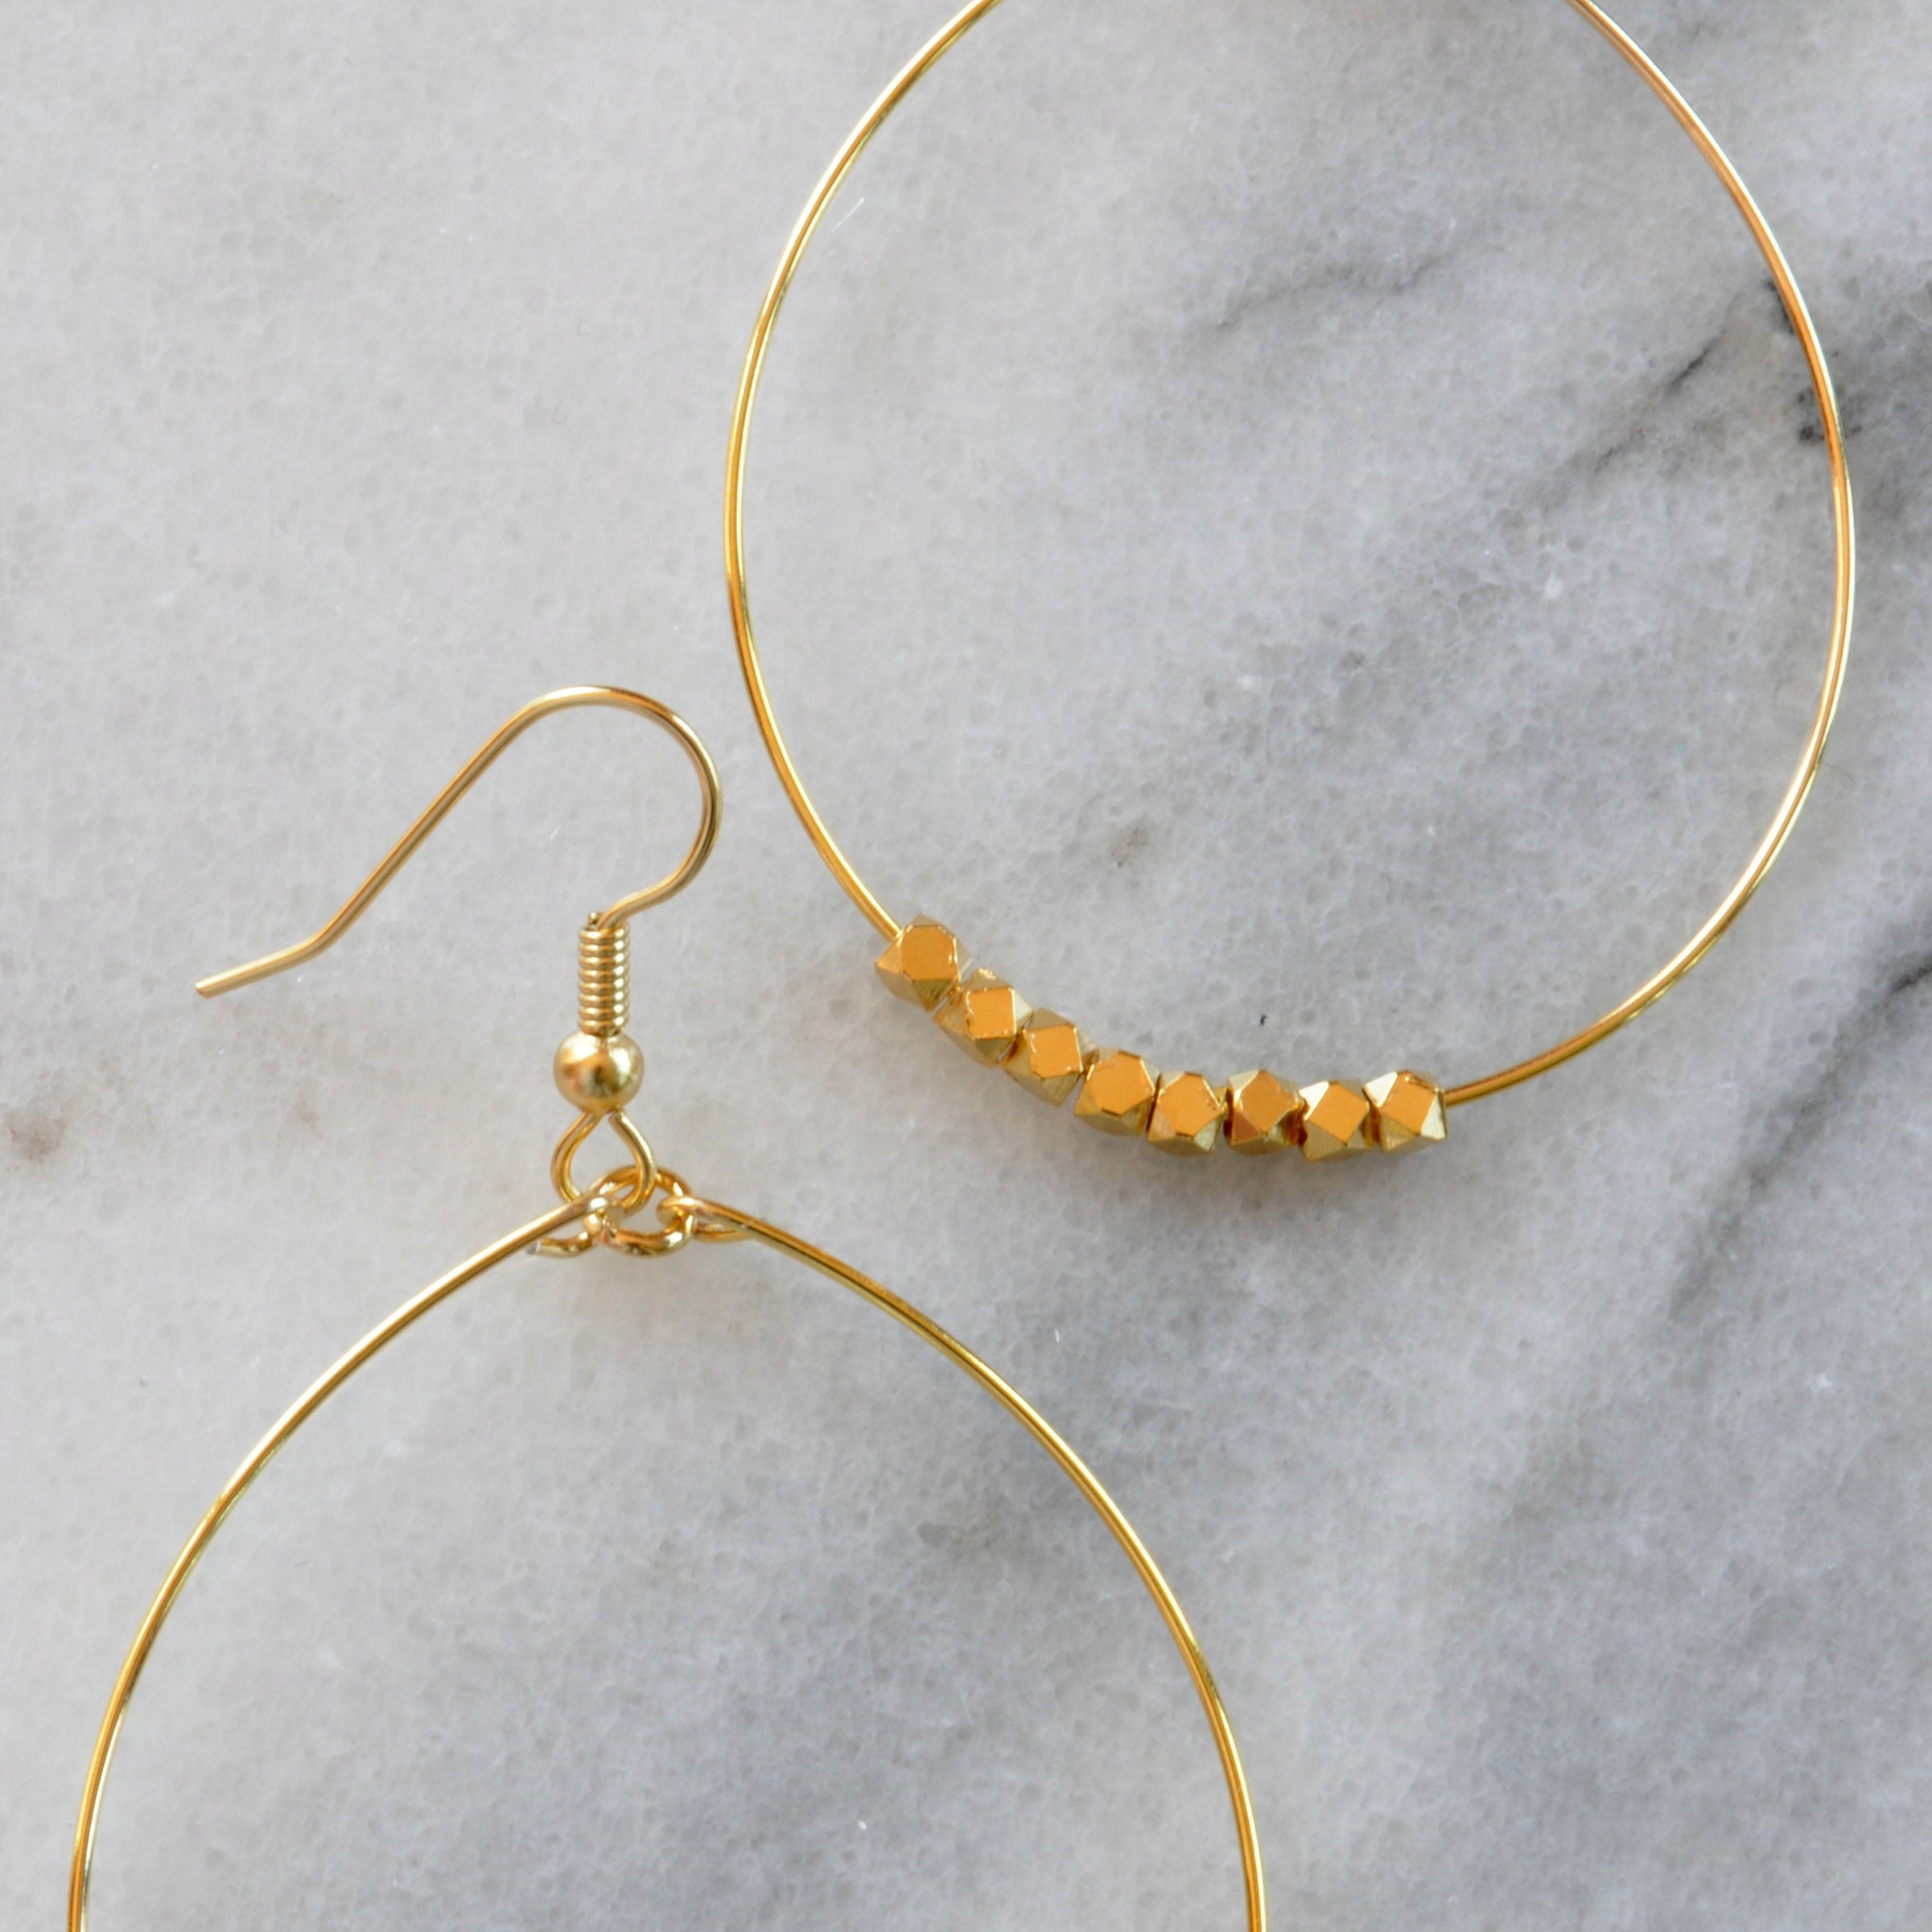 Libby & Smee Gold Beaded Hoop Earrings close up